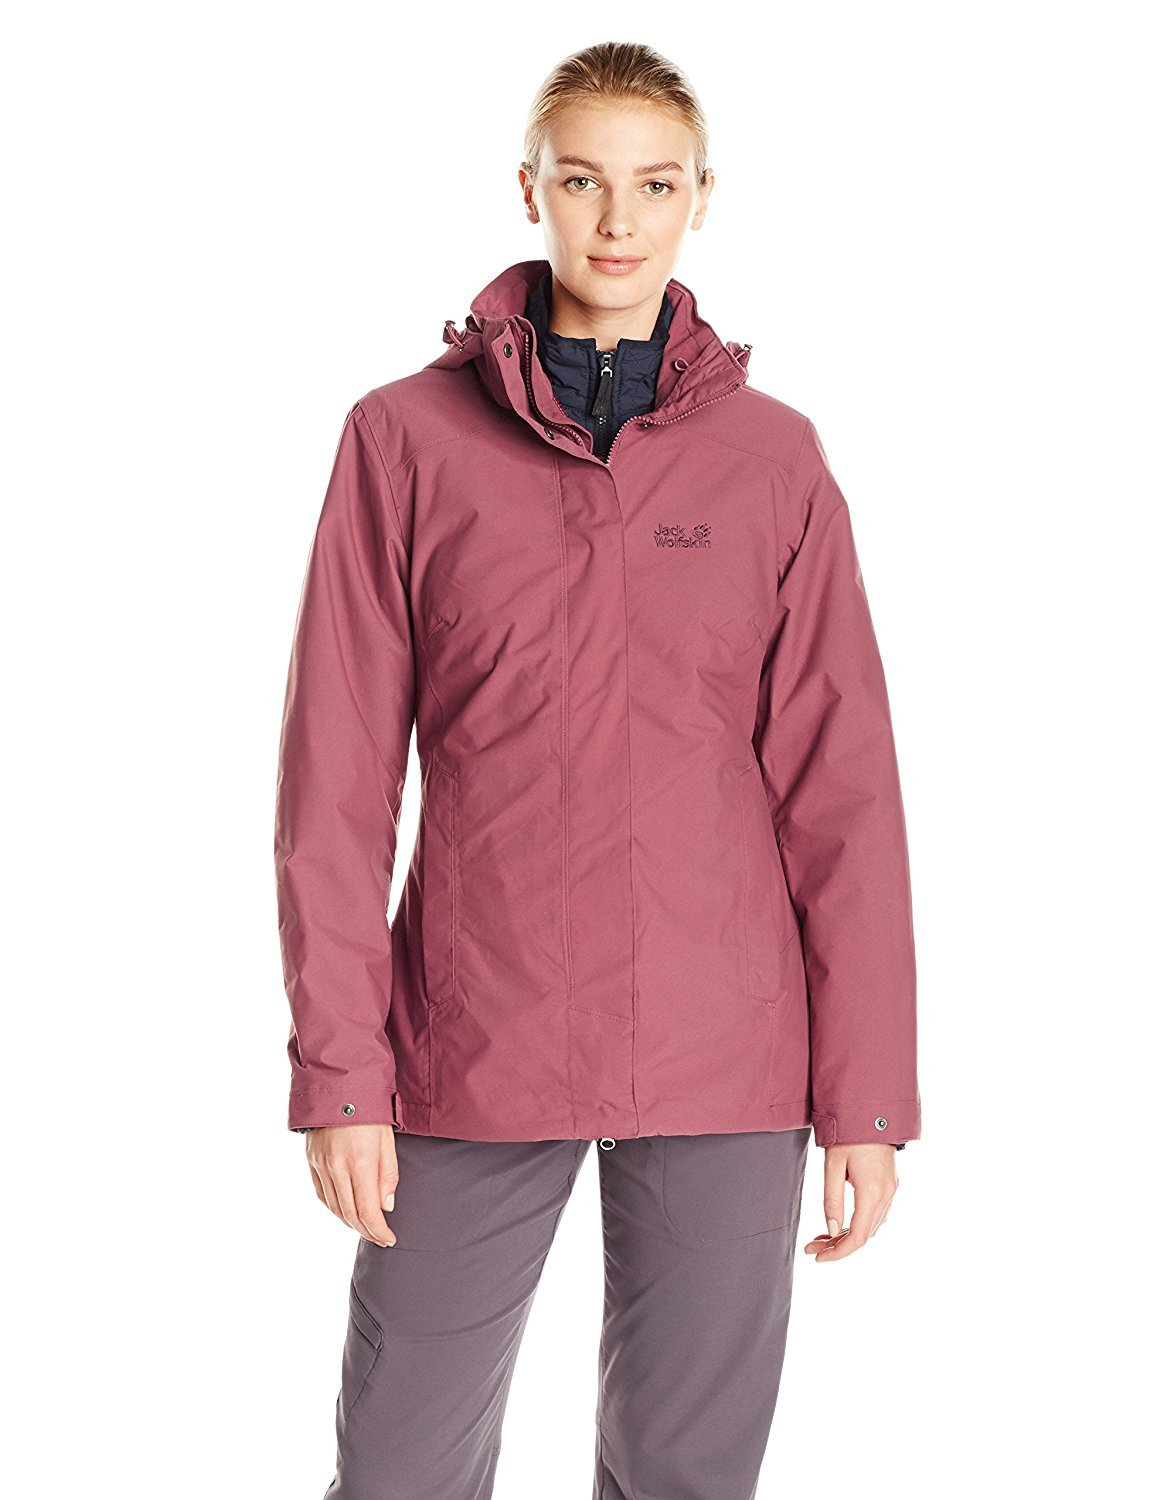 Jack Wolfskin Women's Vernon Jacket XX-Large Dusty Mauve [並行輸入品] B075CKRSJD